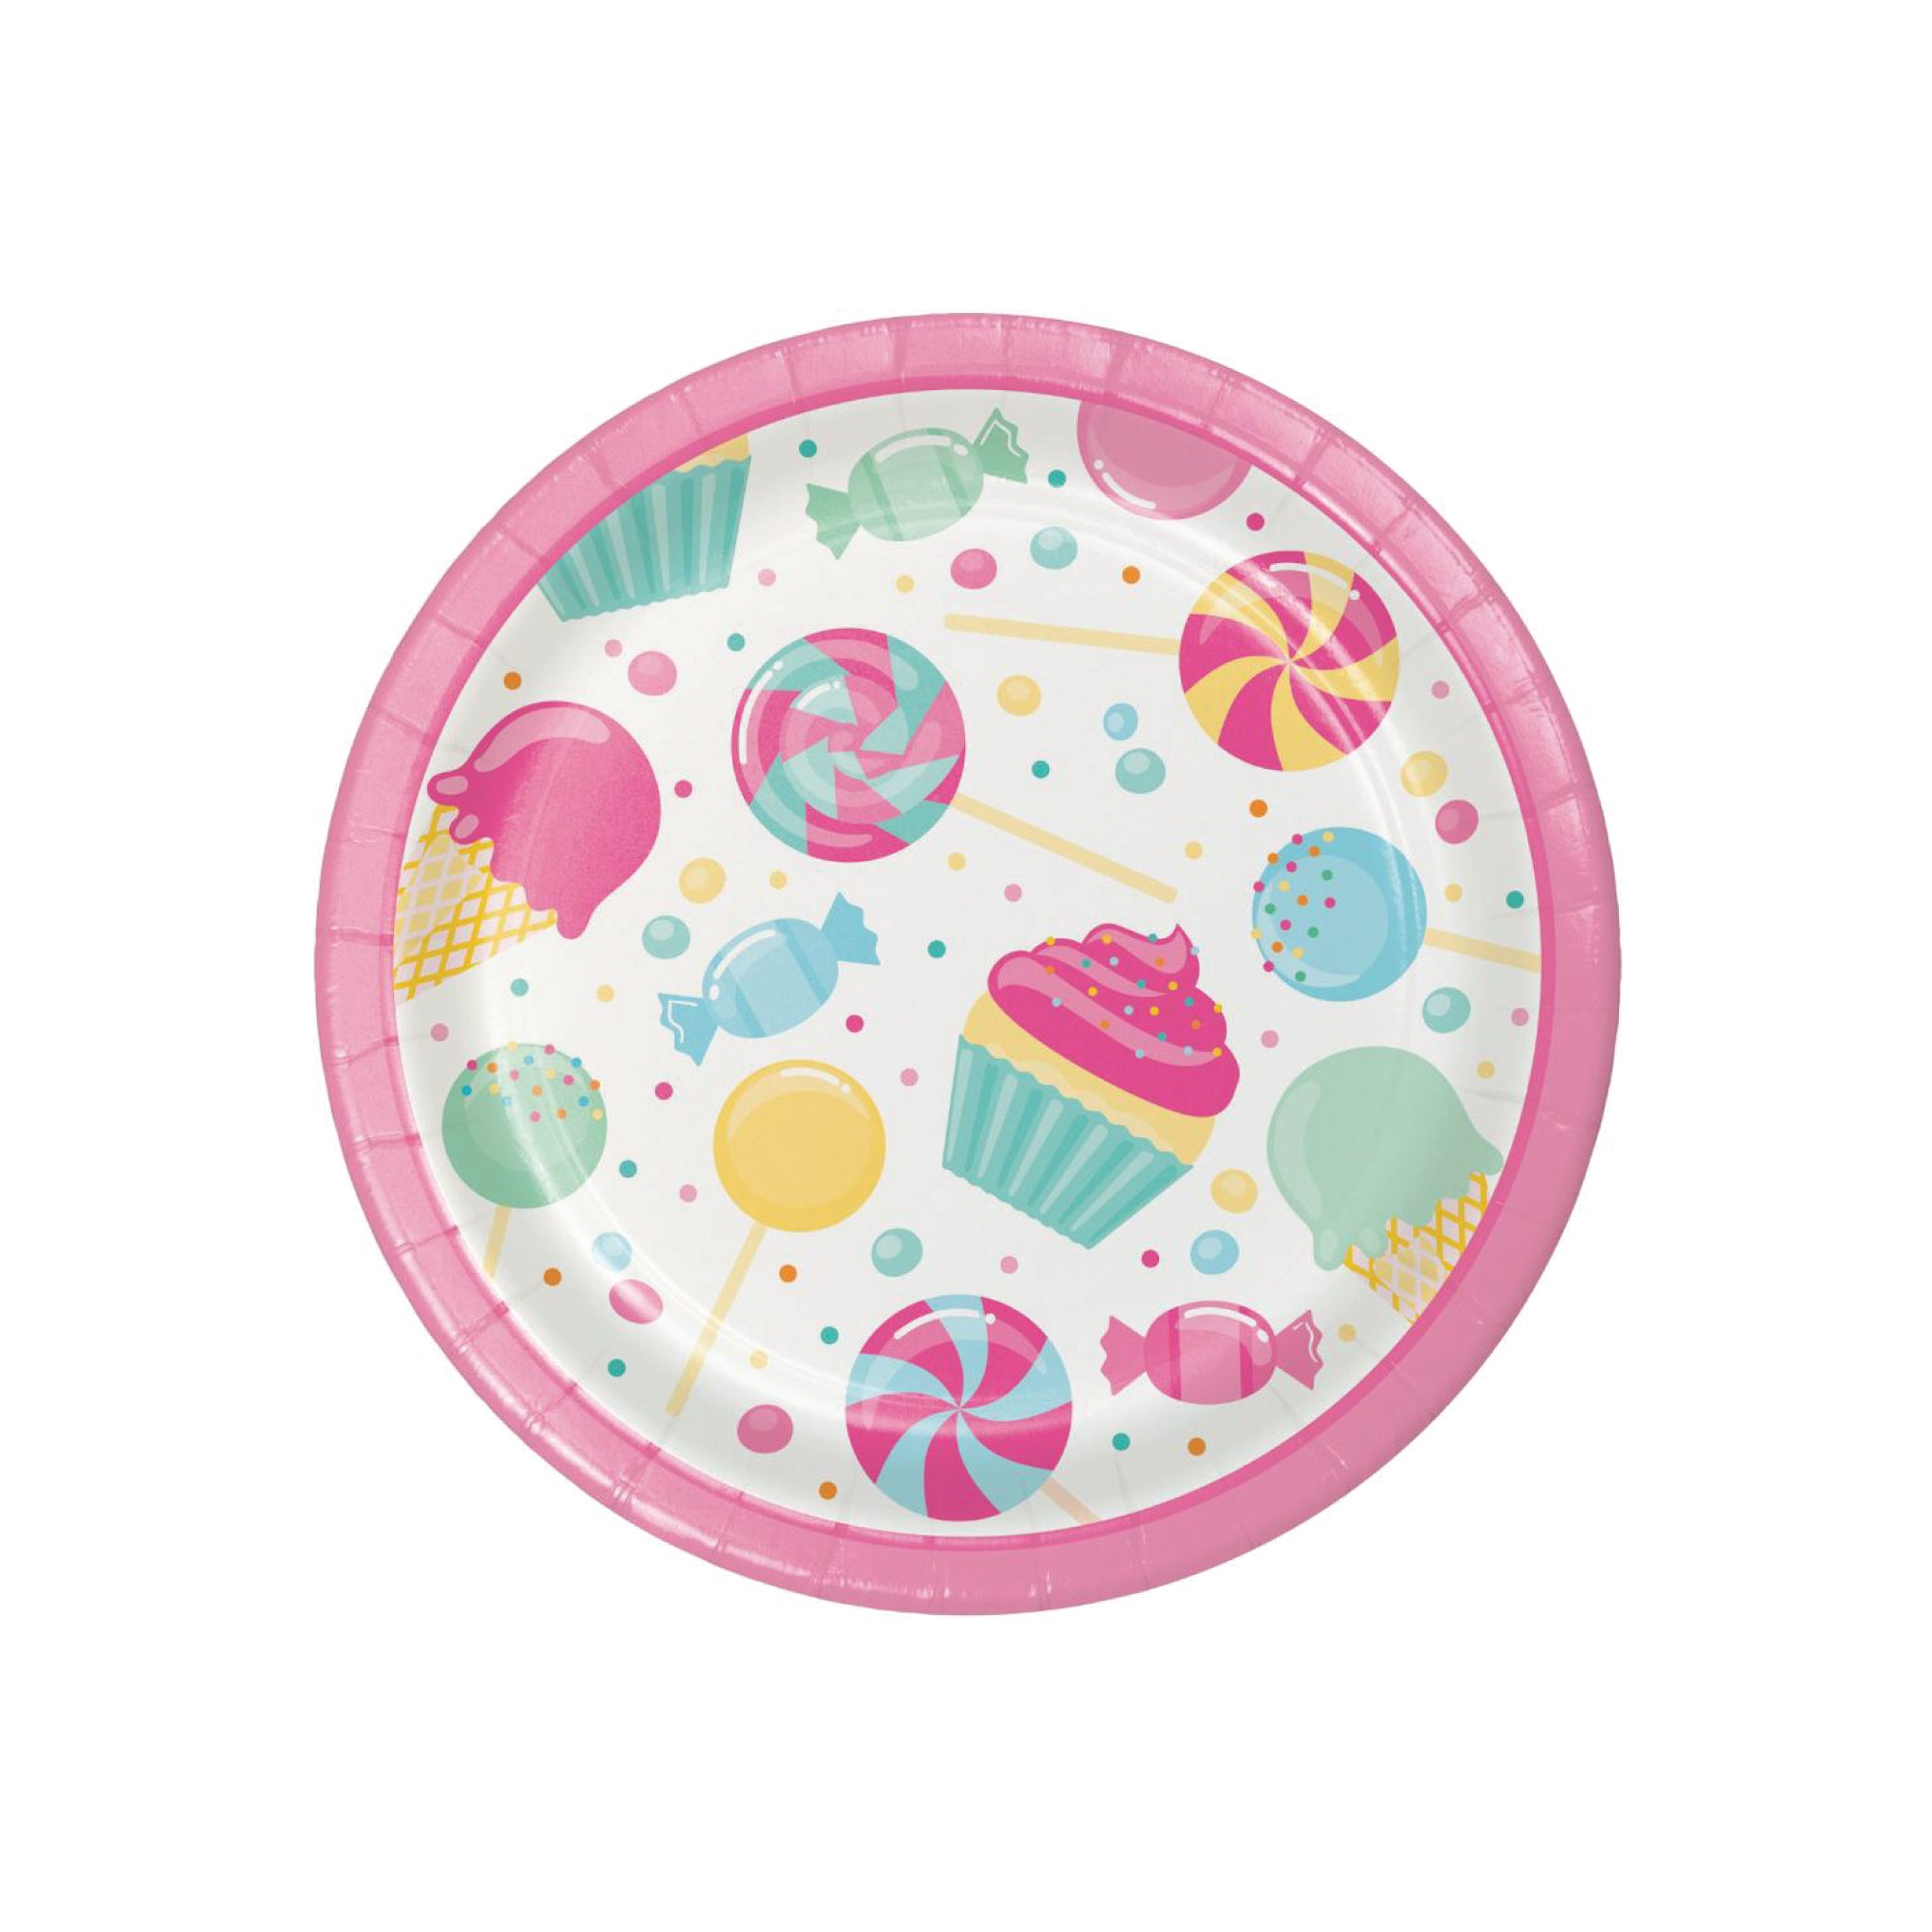 Candy Shop Dessert Plates 8ct | The Party Darling